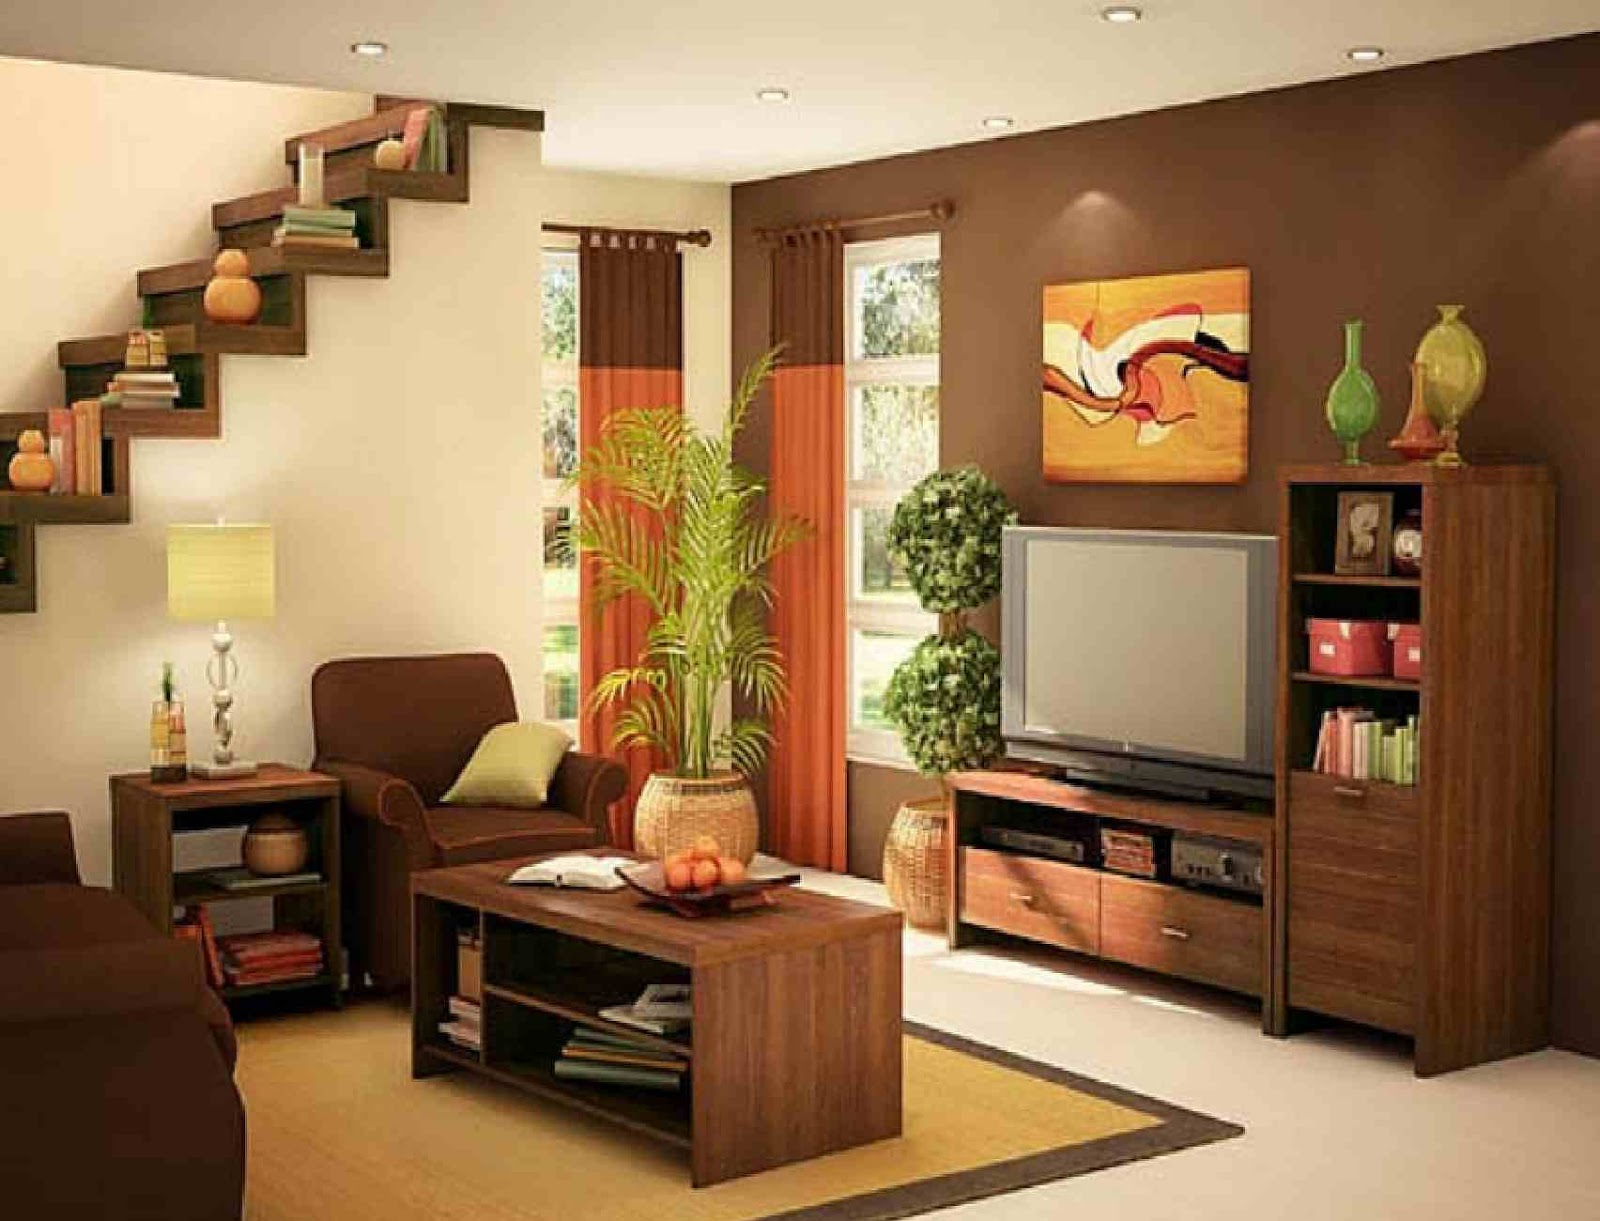 Home interior designs simple living room designs Interior decoration ideas for small living room